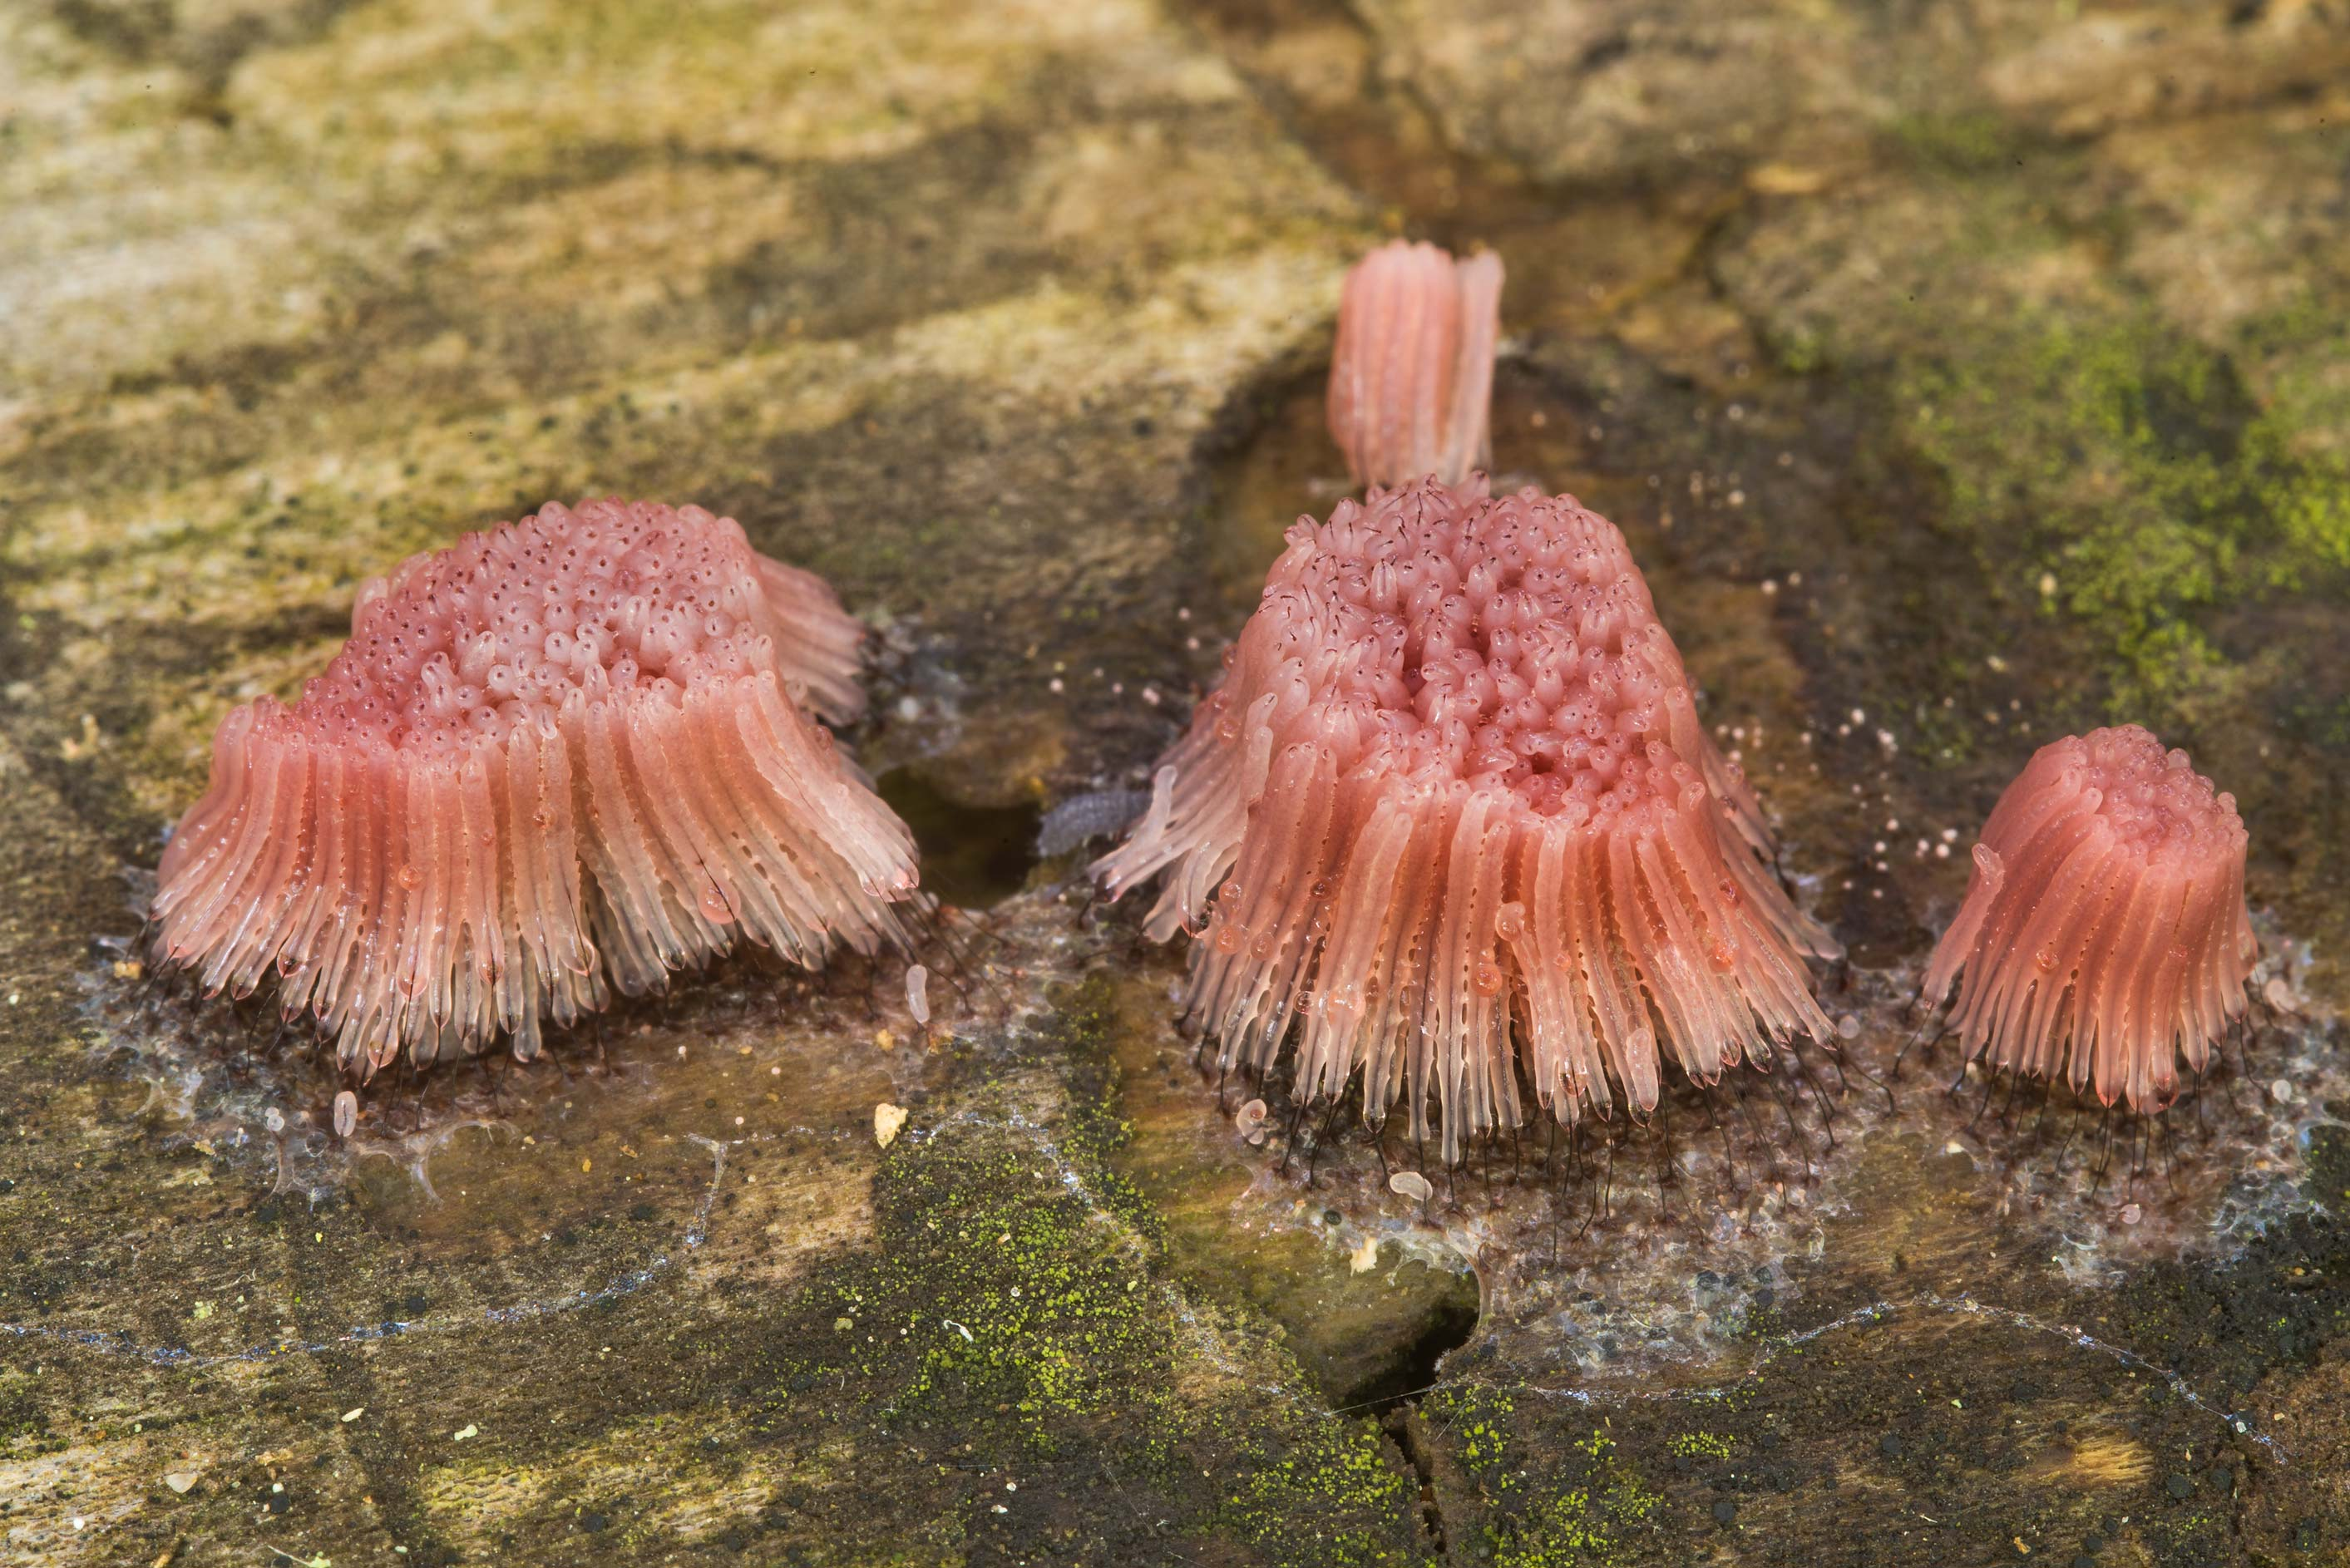 Sporagnia of slime mold Stemonitis fusca on a log...Creek Park. College Station, Texas